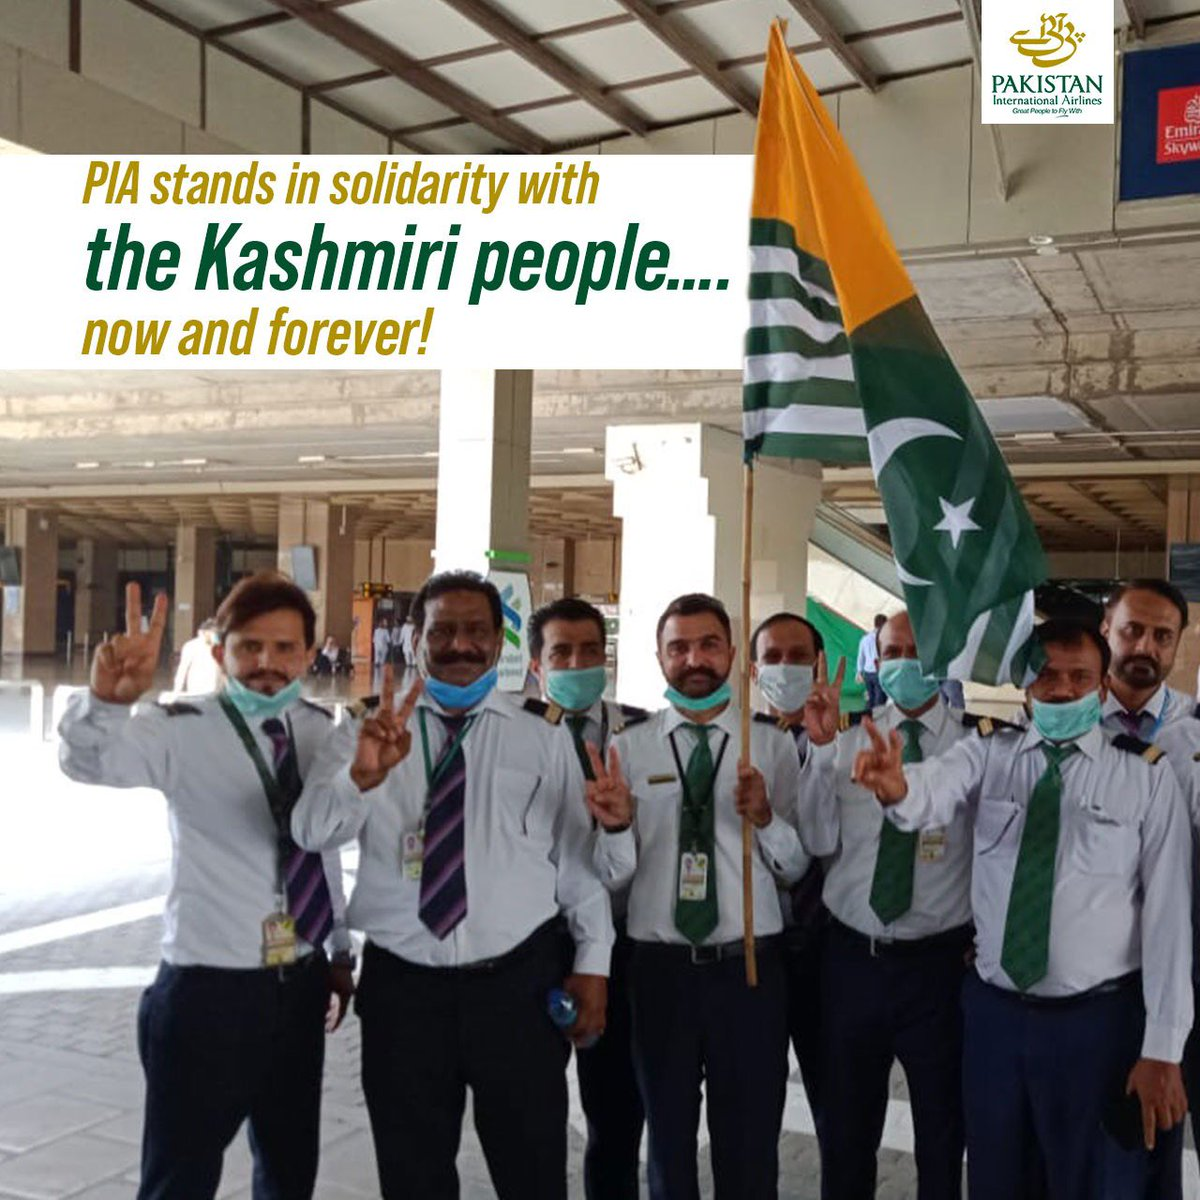 Kashmir is the lifeline of Pakistan!! This is why PIA stands in solidarity with the people of Kashmiri Now and Forever!!  #PIA #PIACares #KashmiriSolidarity #WeAreOne https://t.co/eKw05eKp7i